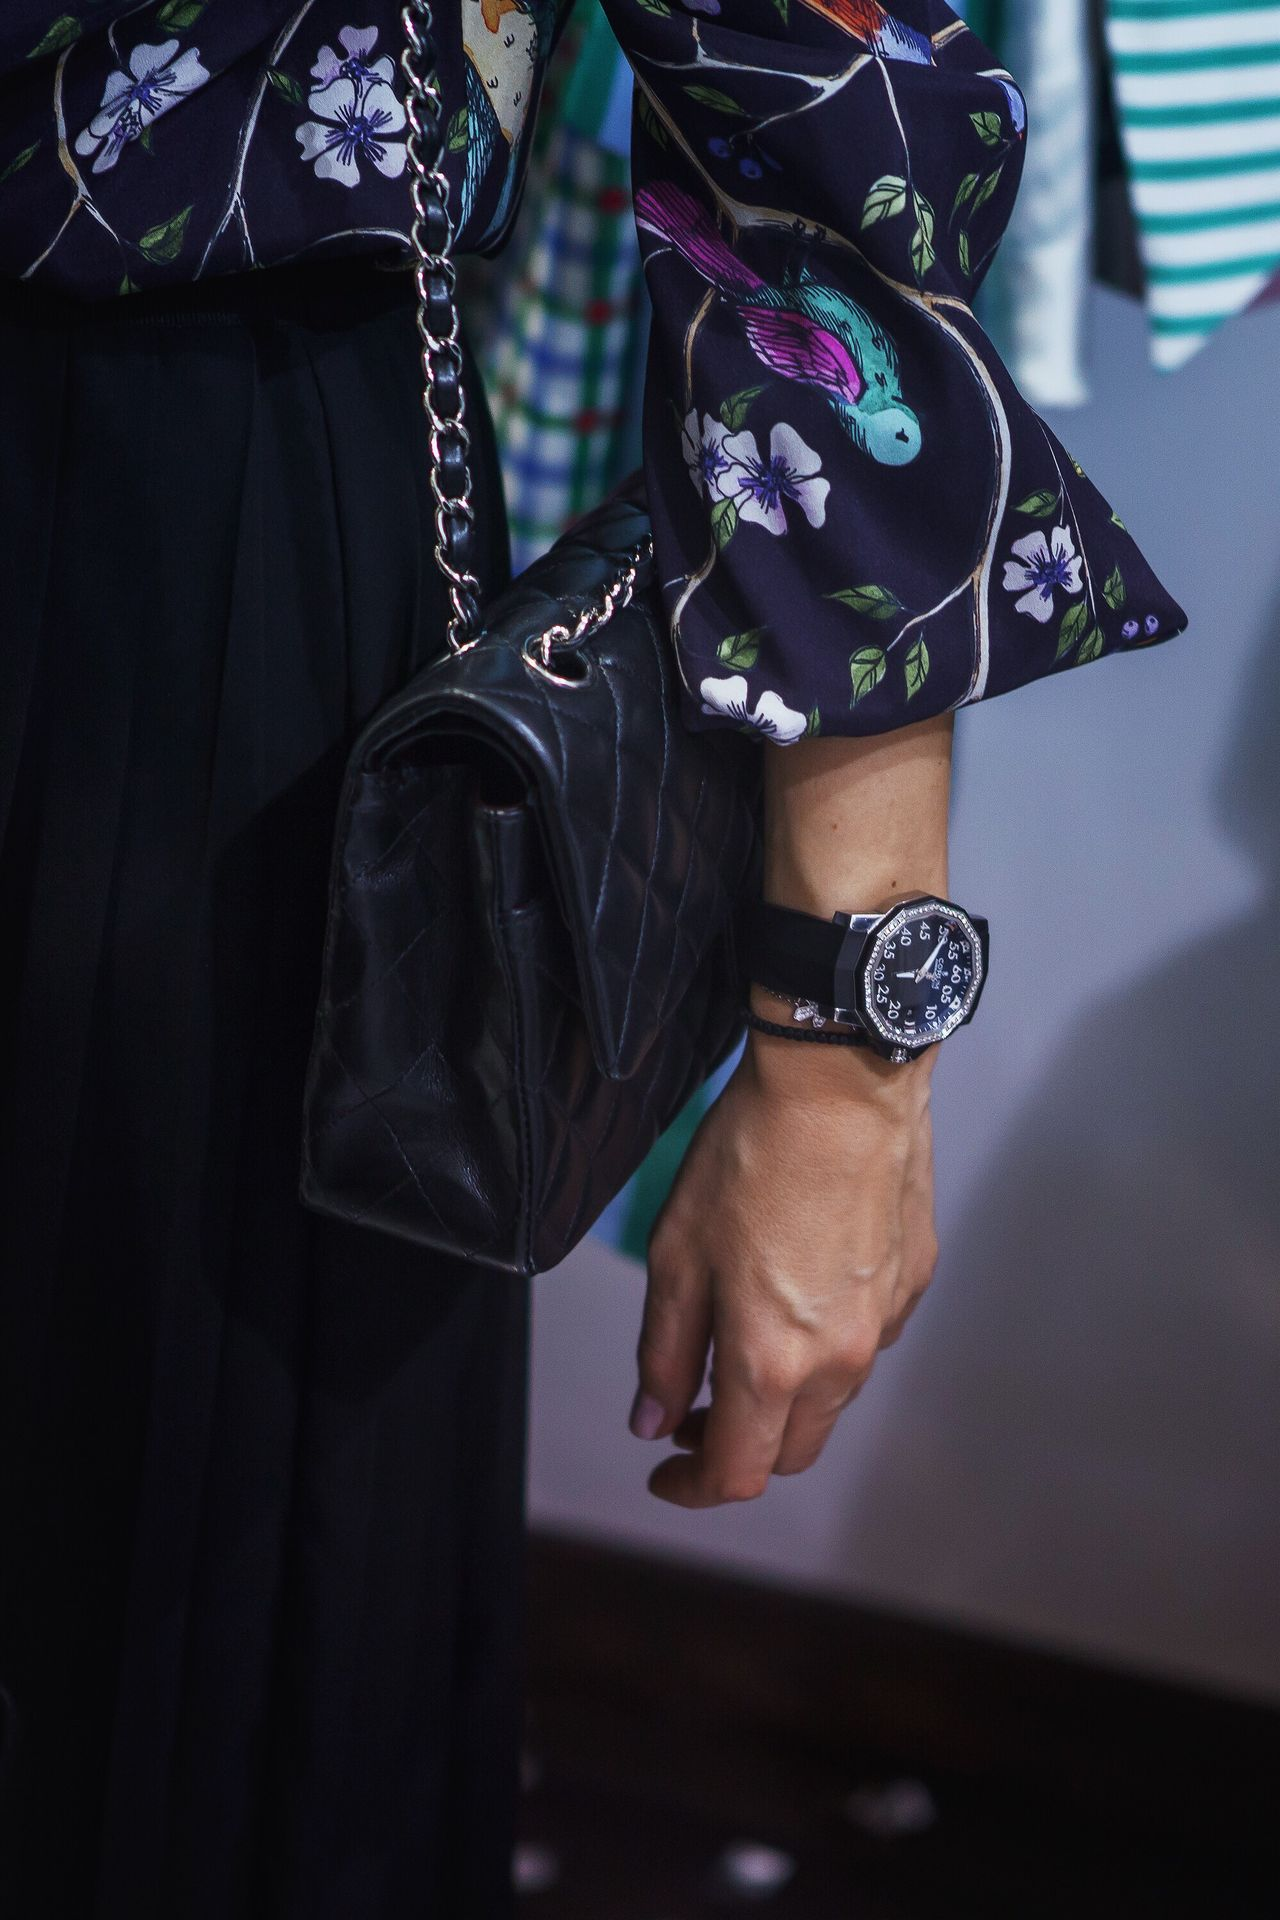 Real People One Person Lifestyles Midsection Women Close-up Day Indoors  Human Body Part Adult People Bag Watch Style Fashion Hand Accesories